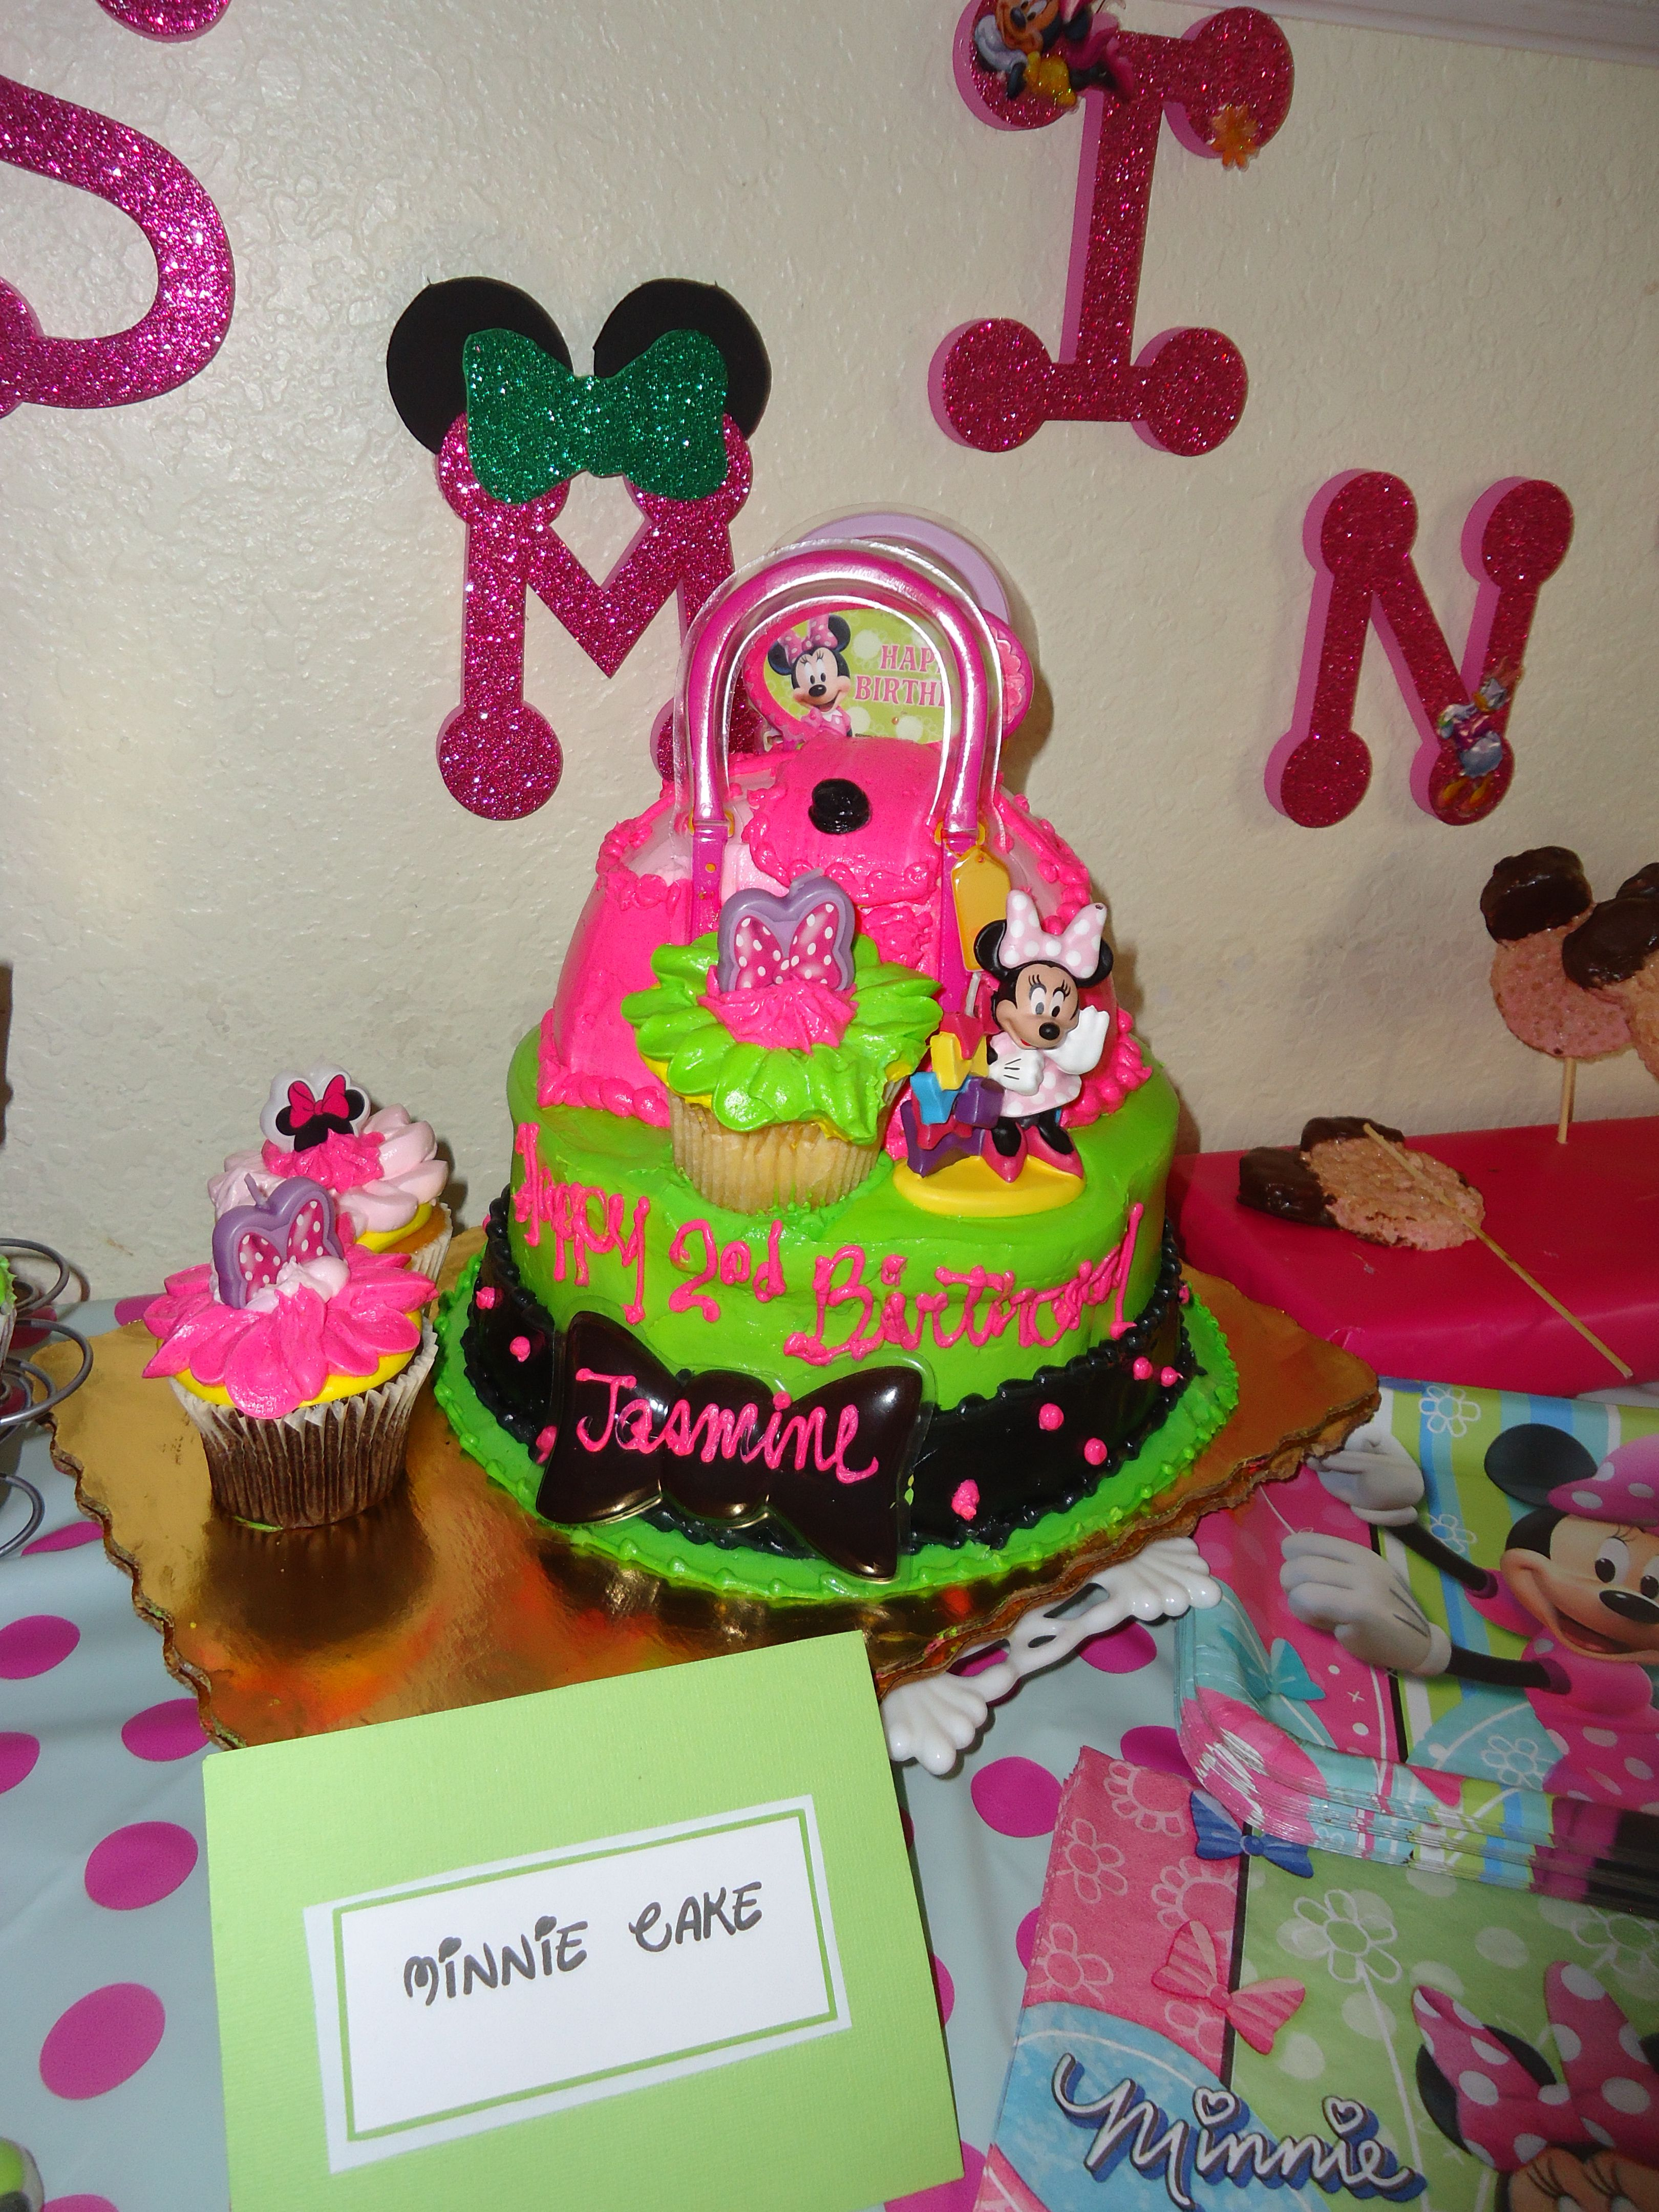 Used The Diva Themed Cake From Publix To Correlate With The Minnie Theme Themed Cakes Minnie 2nd Birthday Parties